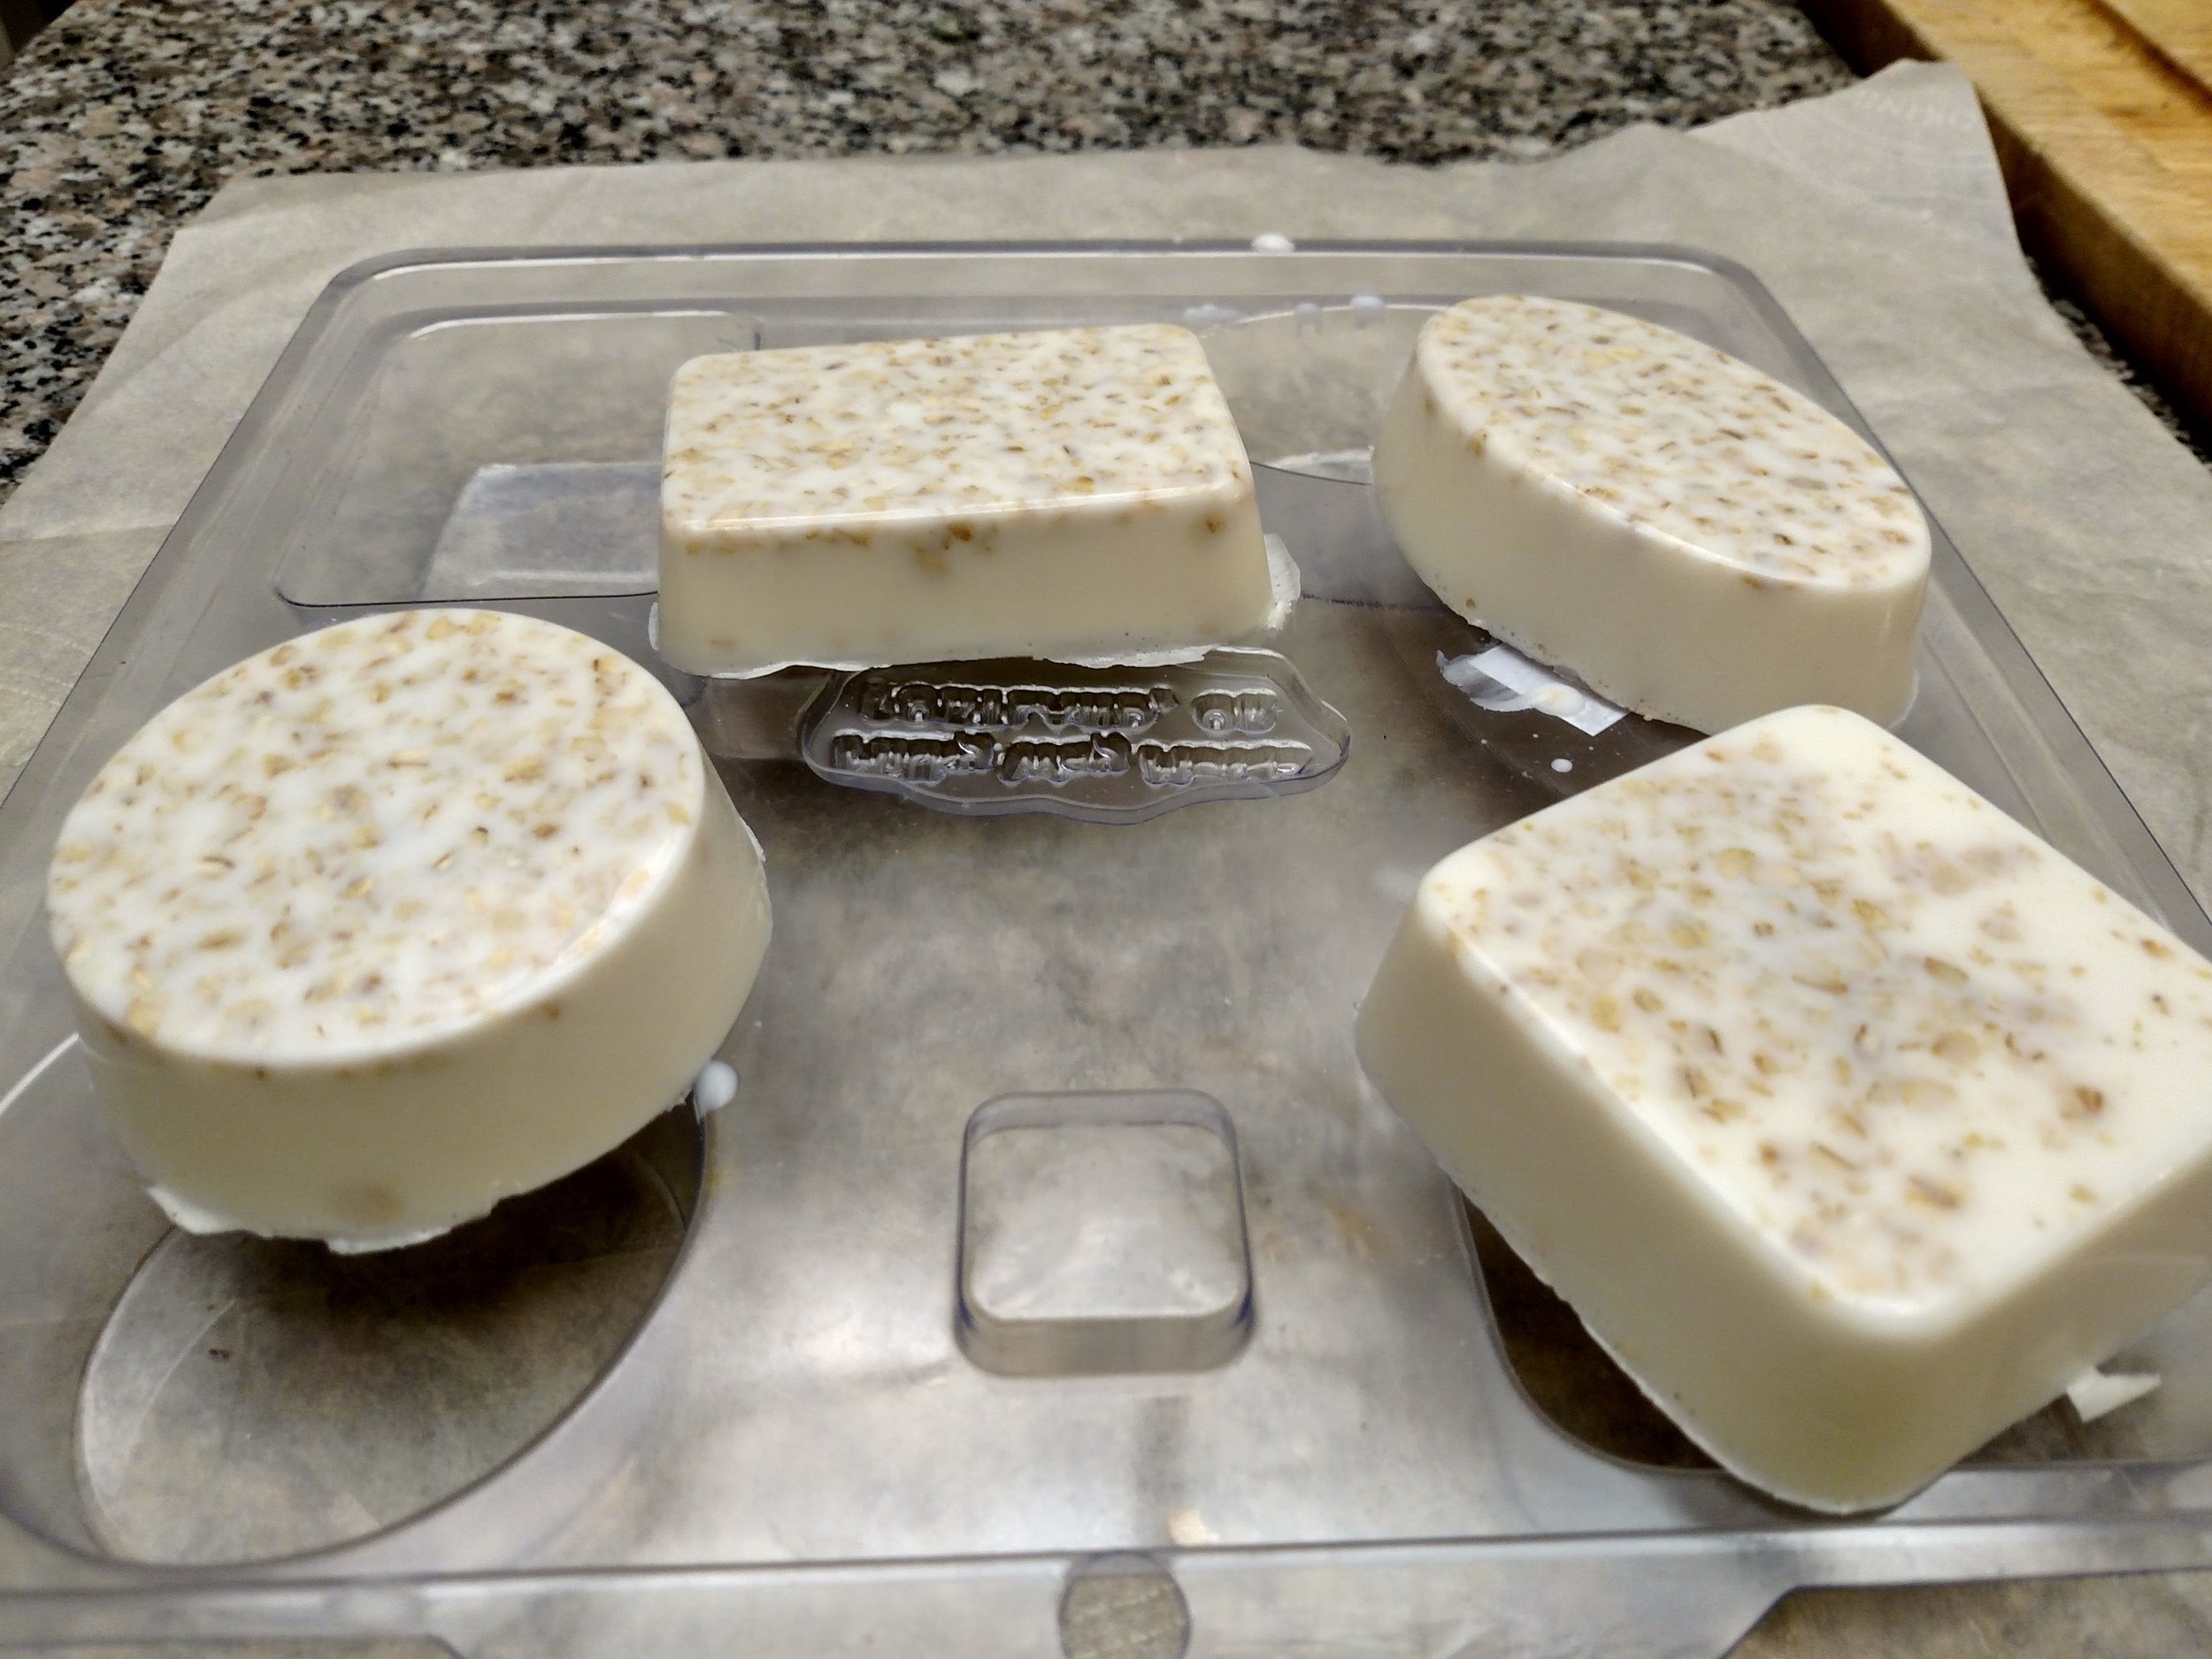 Soaps from molds